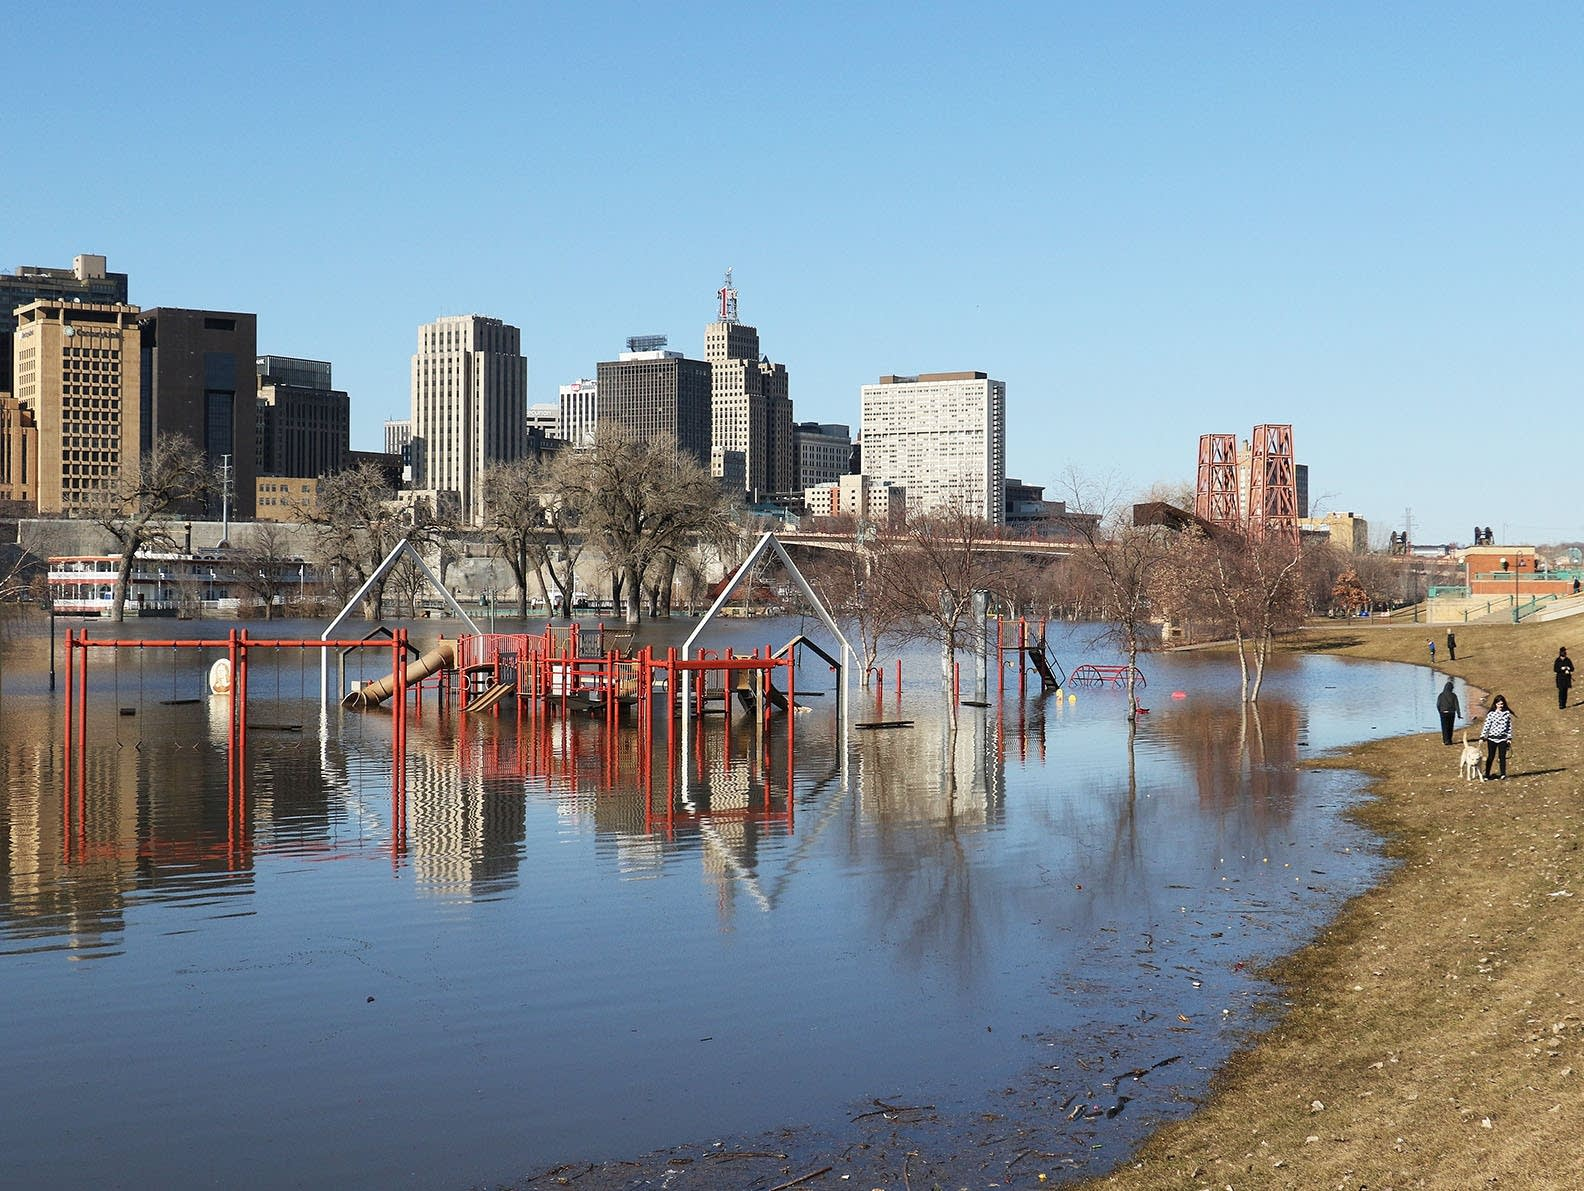 A playground is flooded by the Mississippi River at Harriet Island